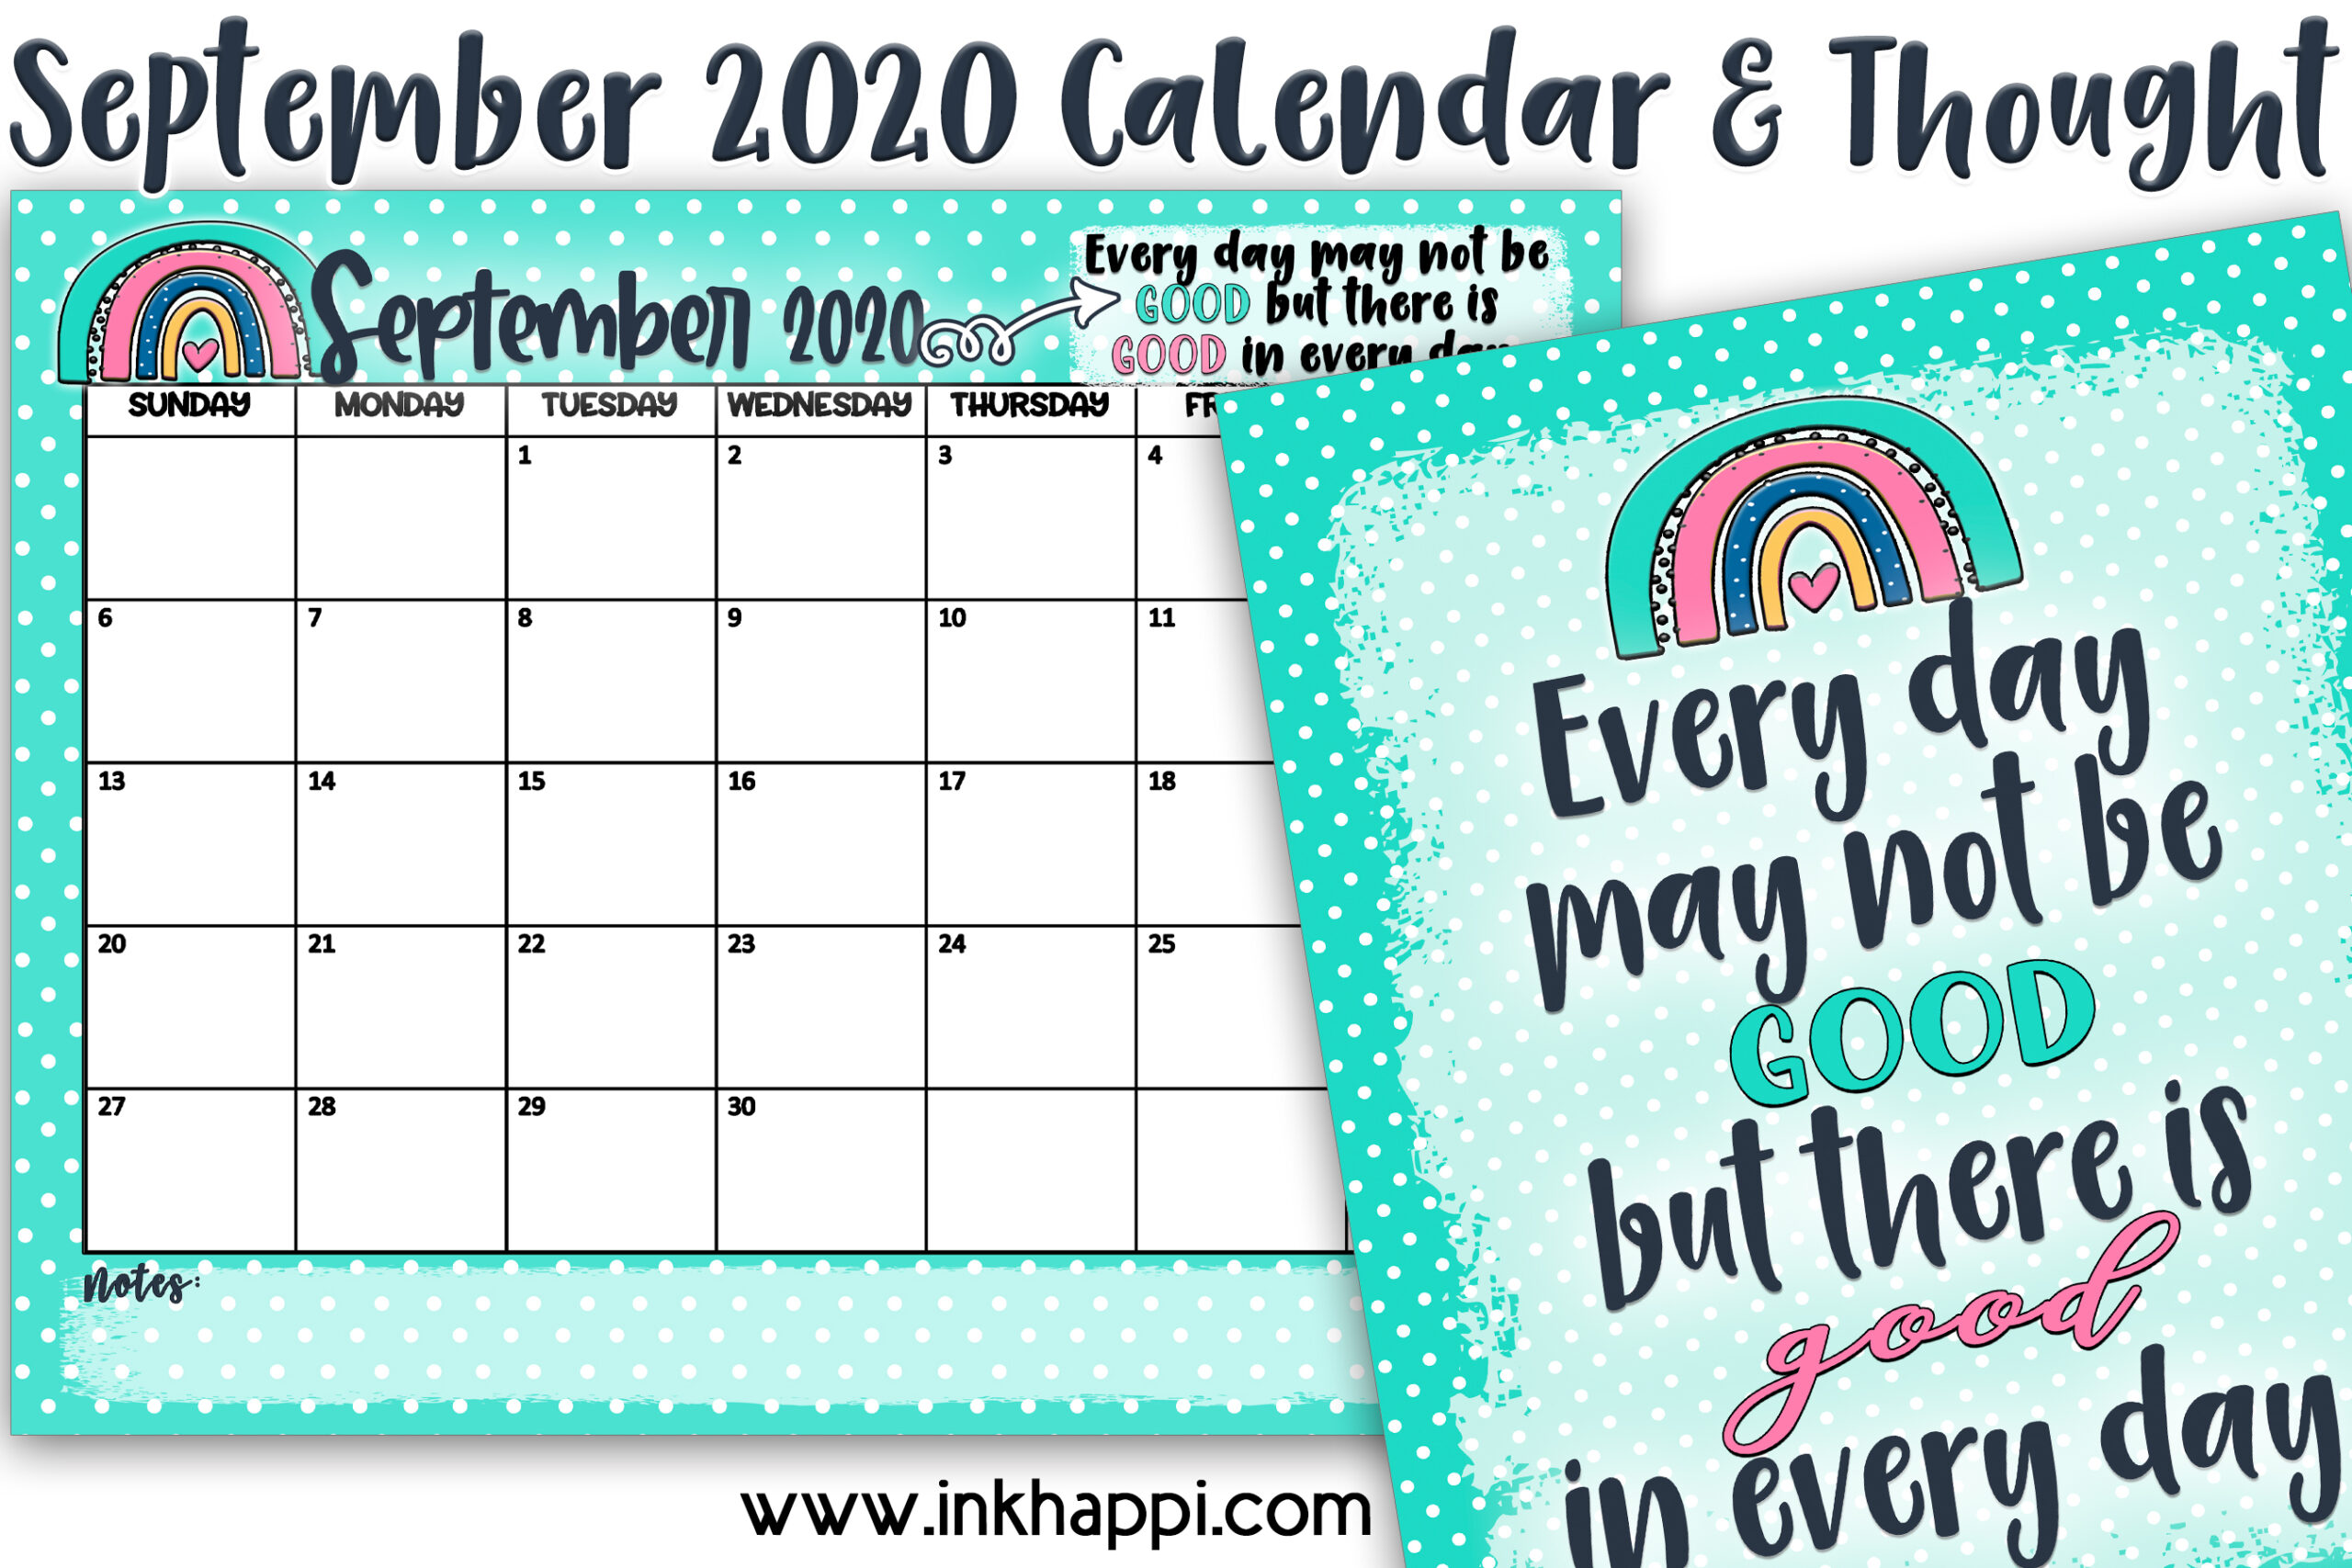 September 2020 Calendar and a thought about making our days better. Free printables! #calendar #freeprintables